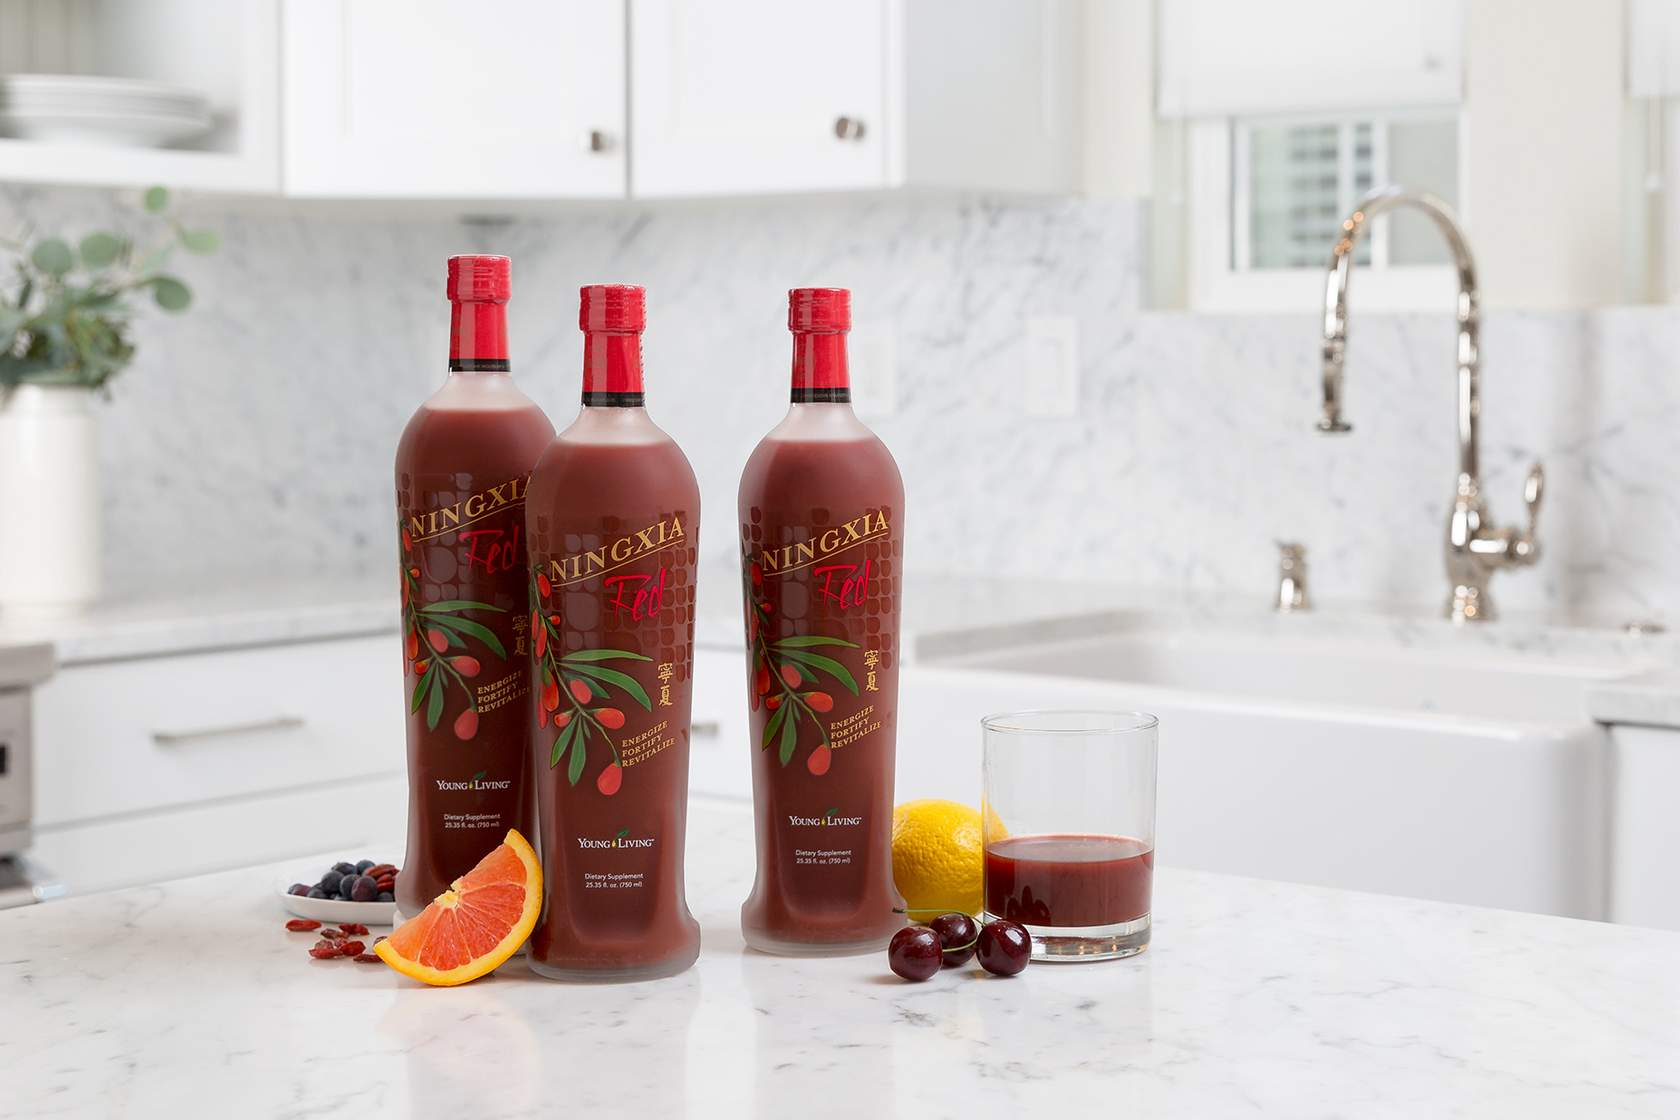 three ningxia red bottles and a glass of ningxia